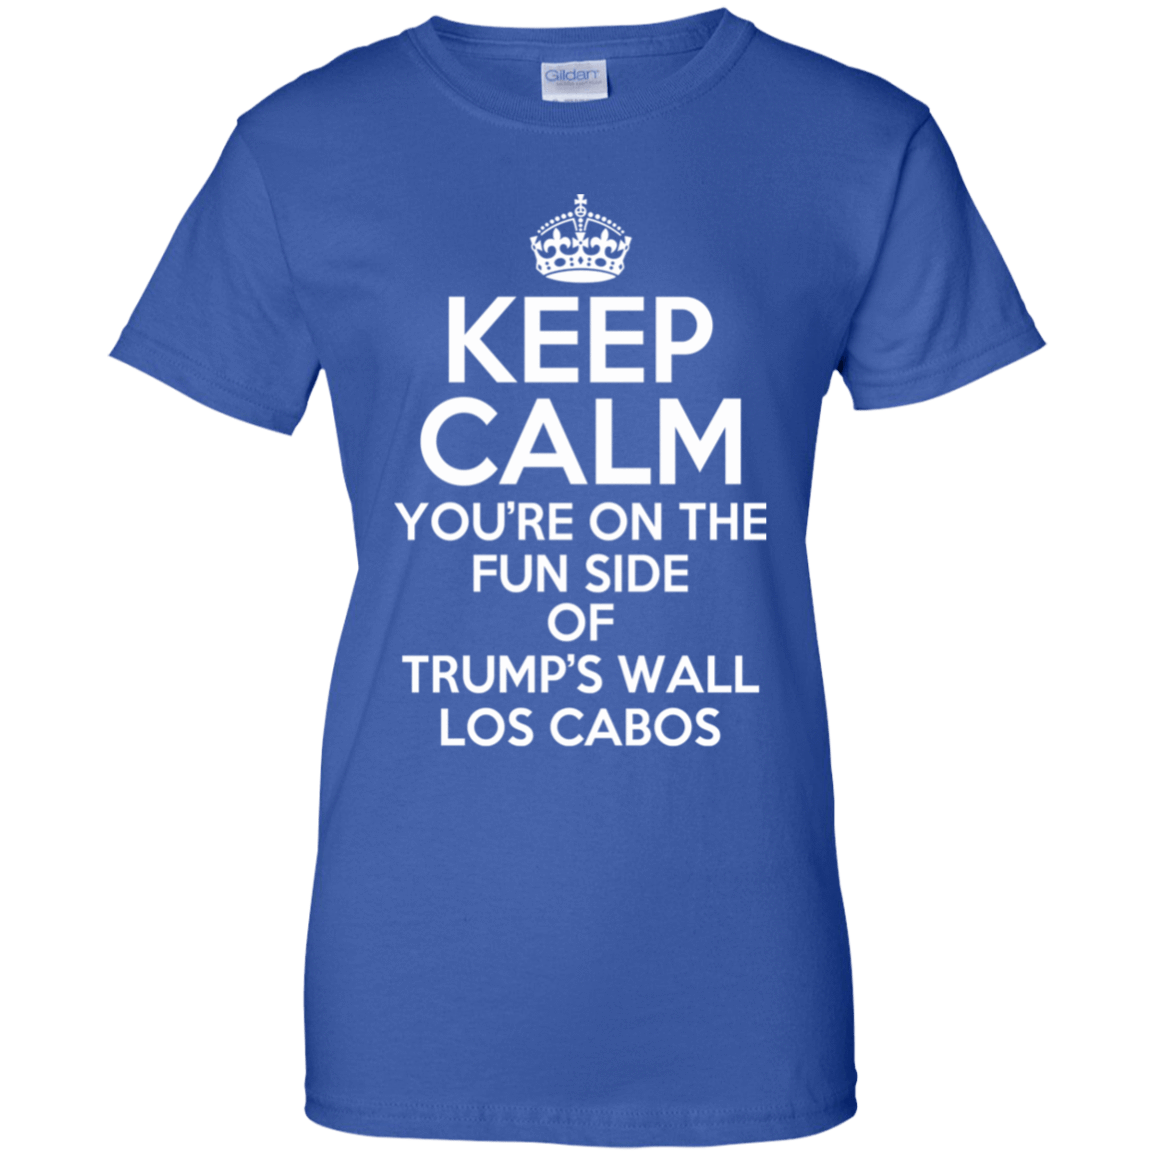 Keep Calm You're On The Fun Side Of Trump's Wall Los Cabos T-Shirts & Hoodies 939-9264-76151289-44807 - Tee Ript